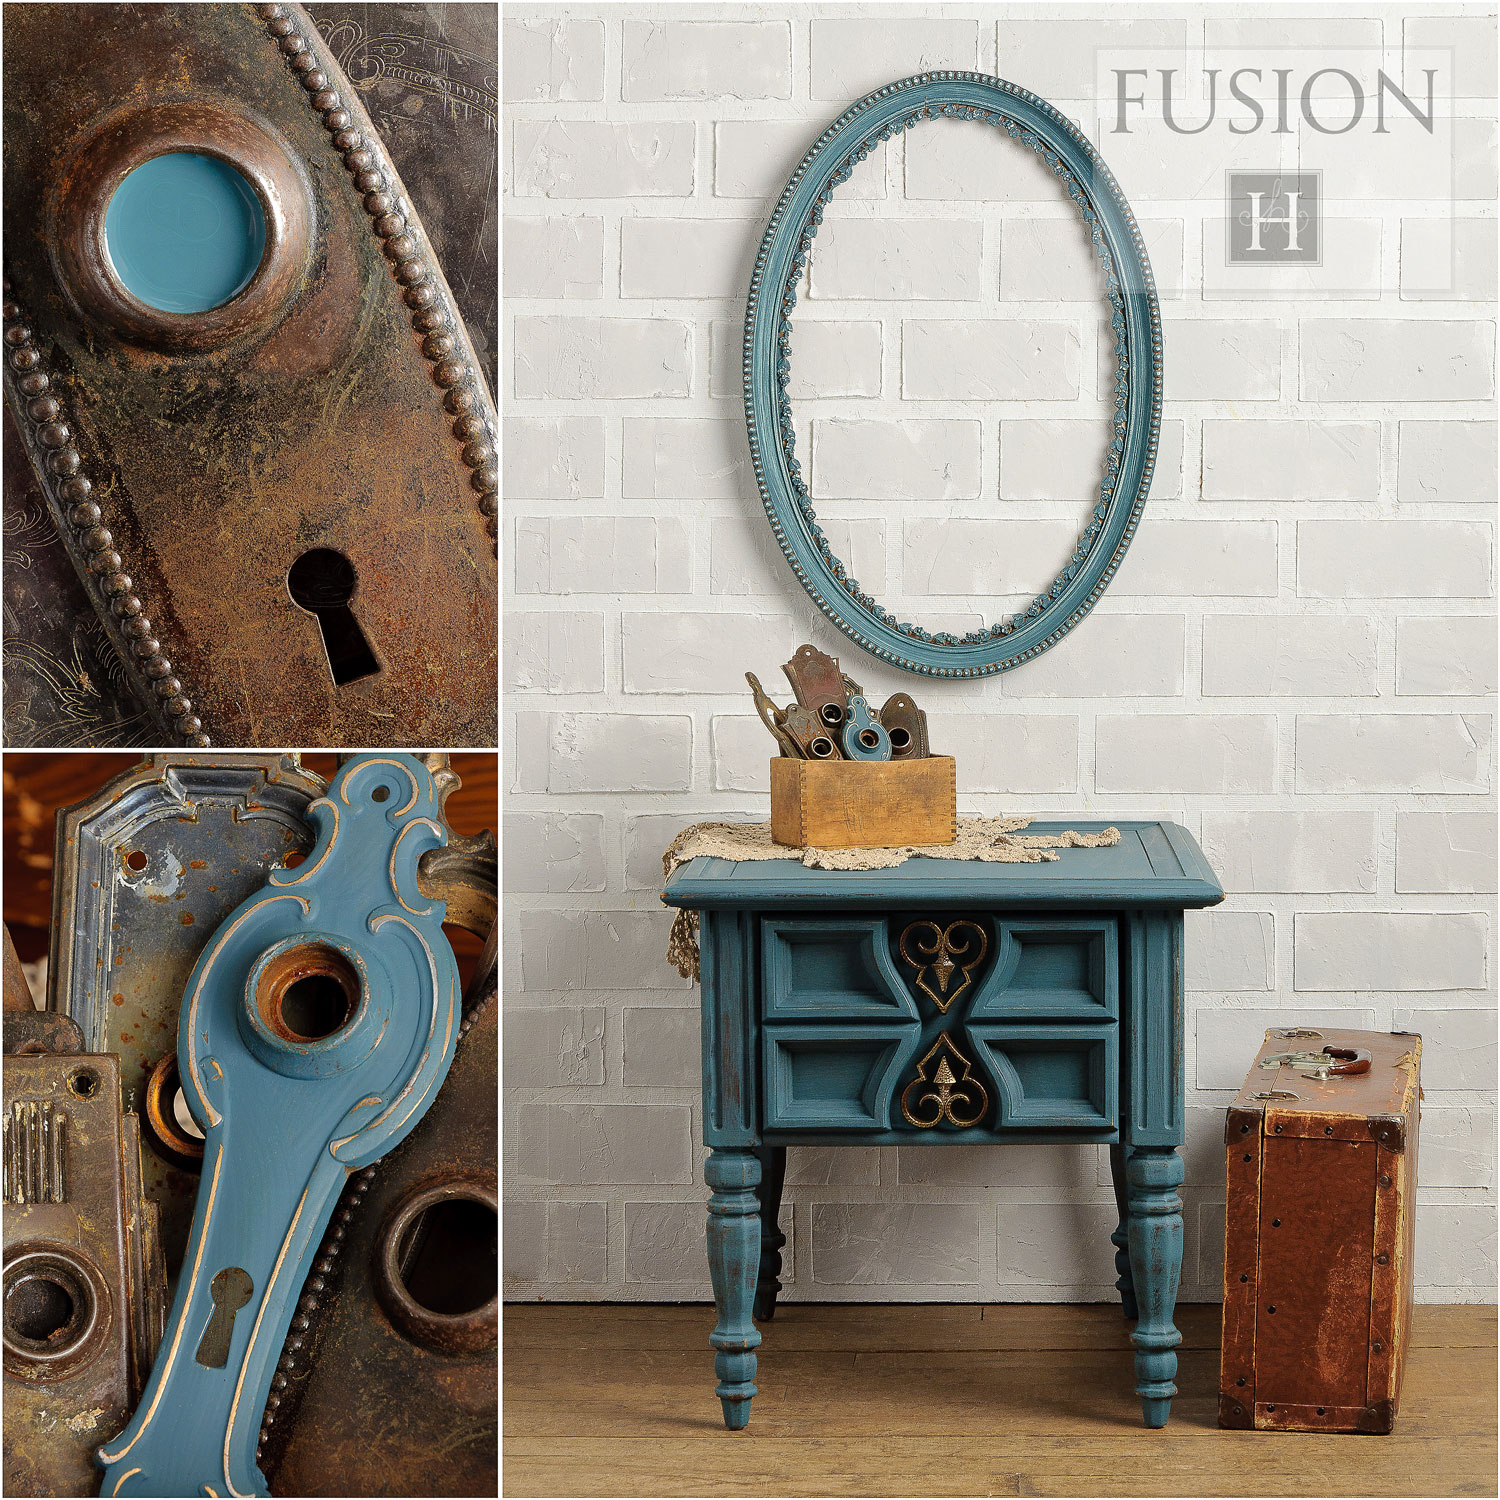 Fusion paint in homestead blue - via My Painted Door (.com)